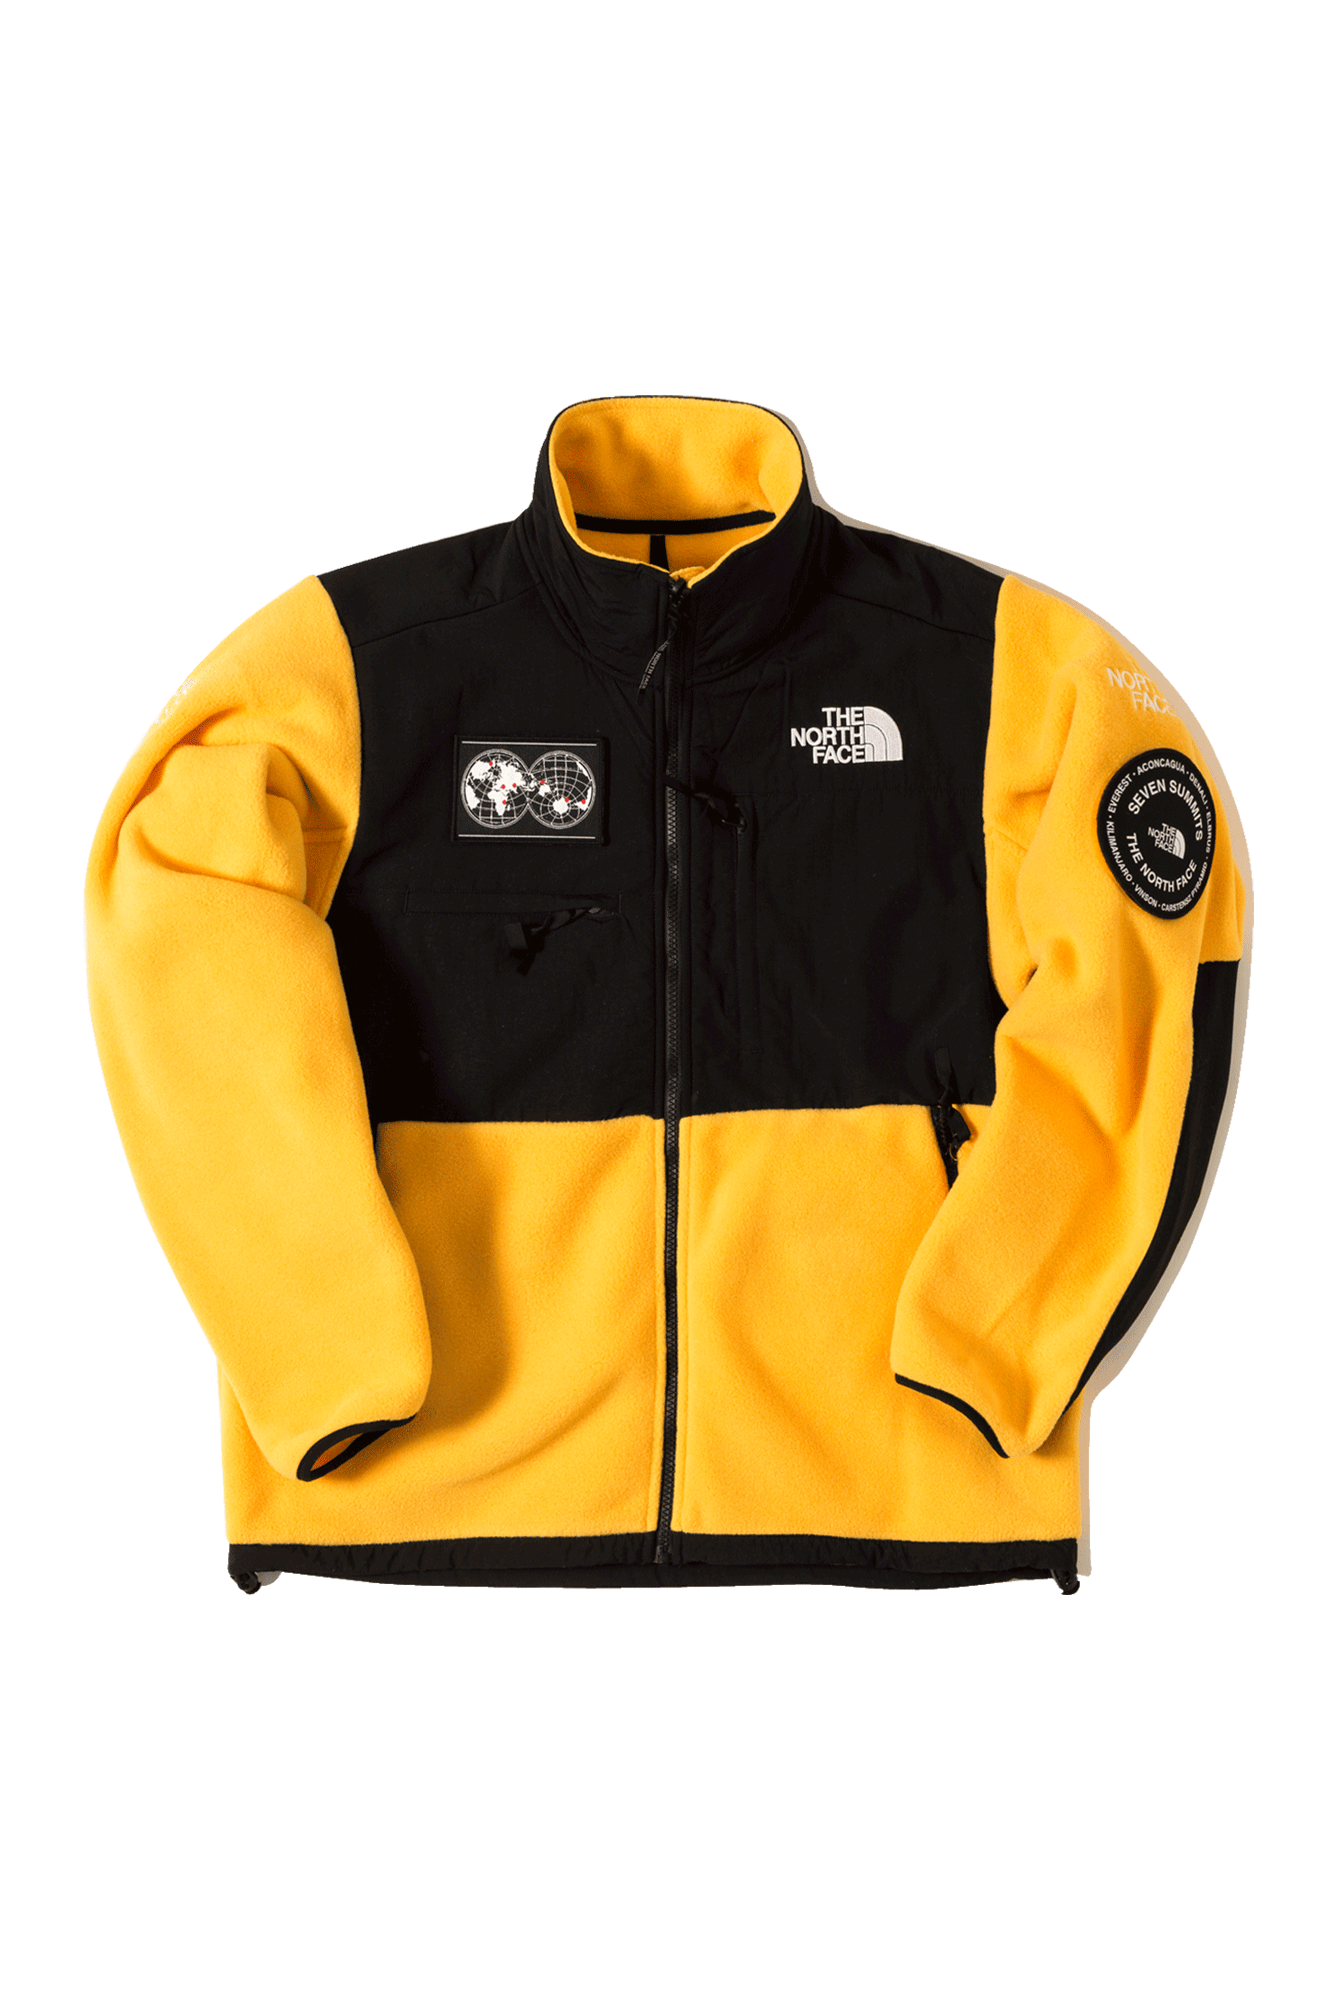 7SE 95 Retro Denali Jacket Giallo